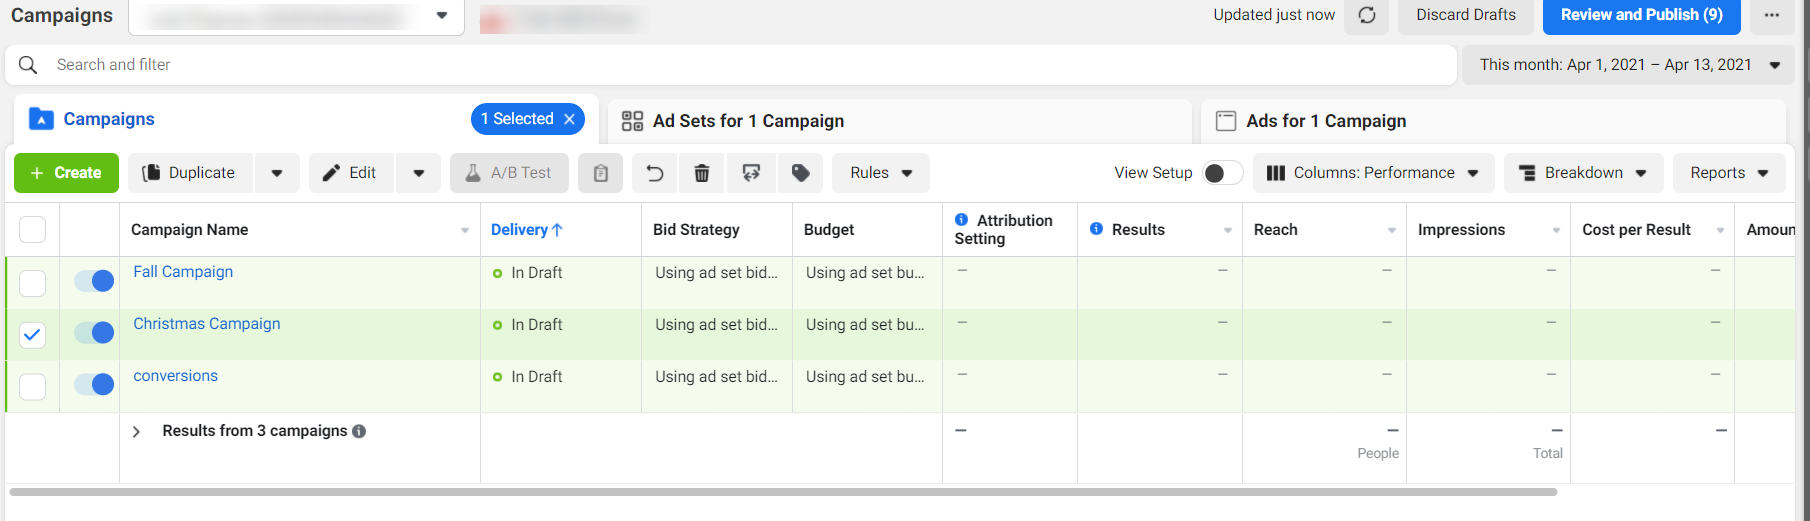 Campaign reporting dashboard in Facebook Ads Manager